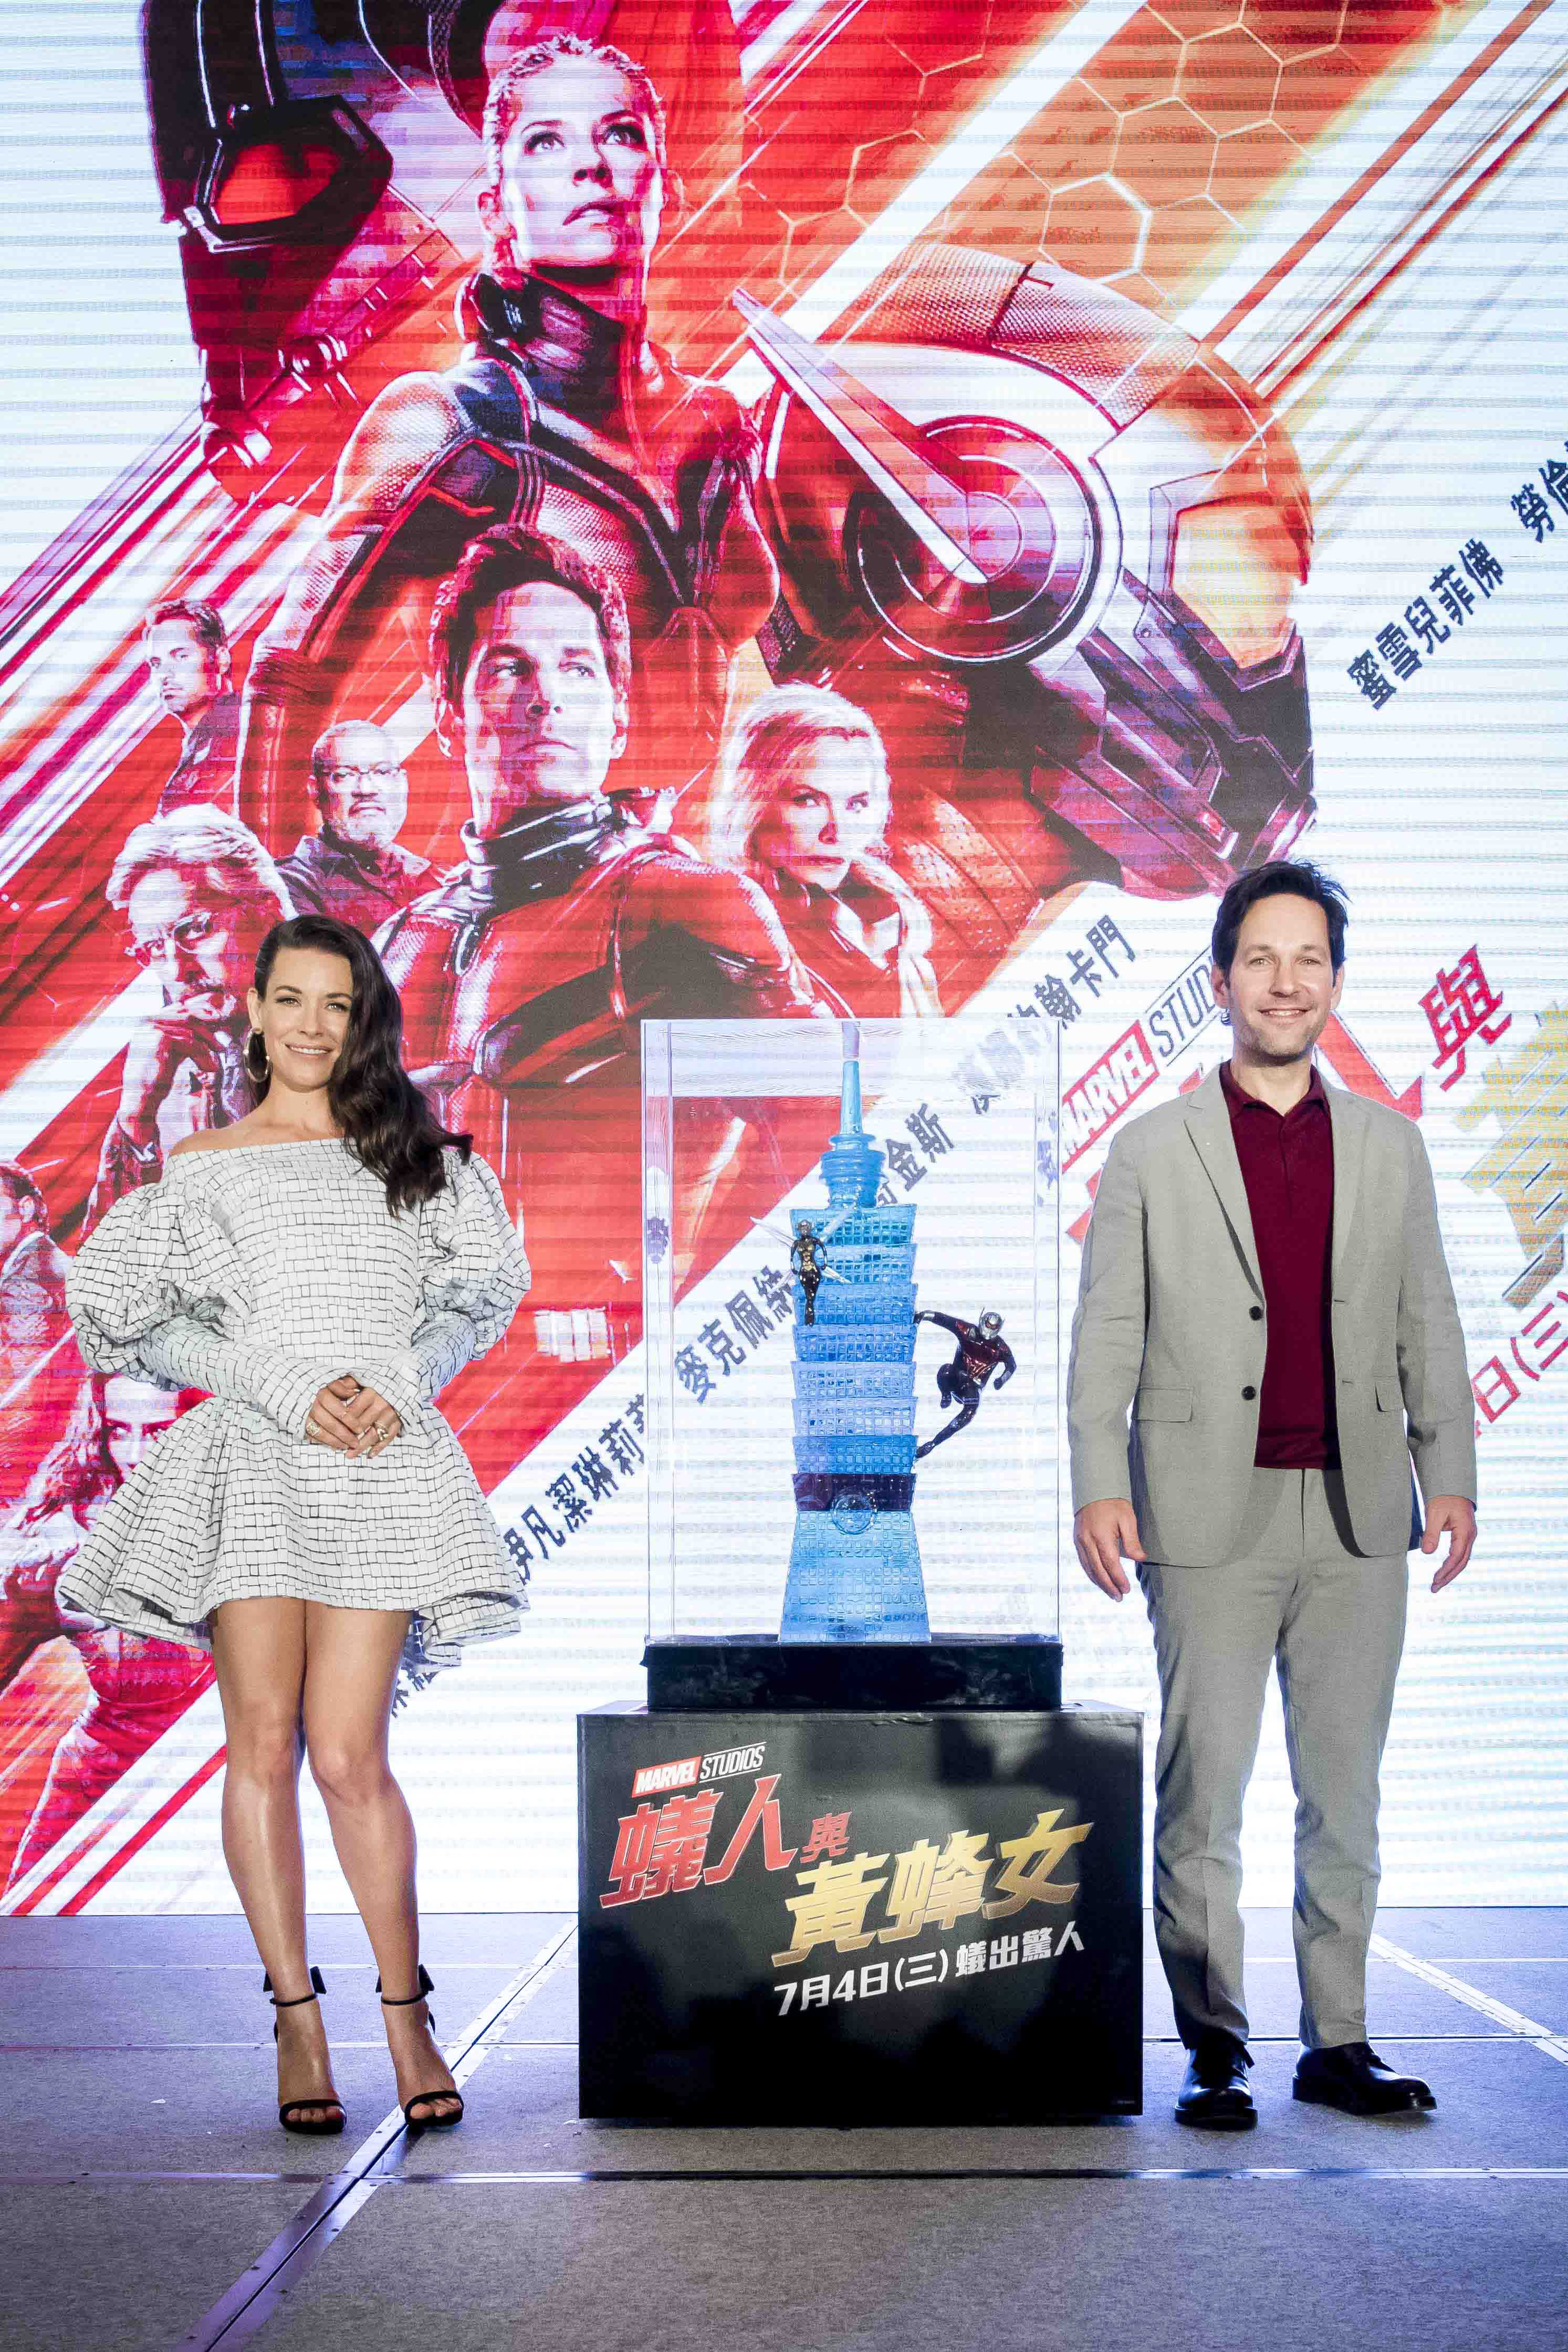 Antman and the wasp promotions in Taiwan